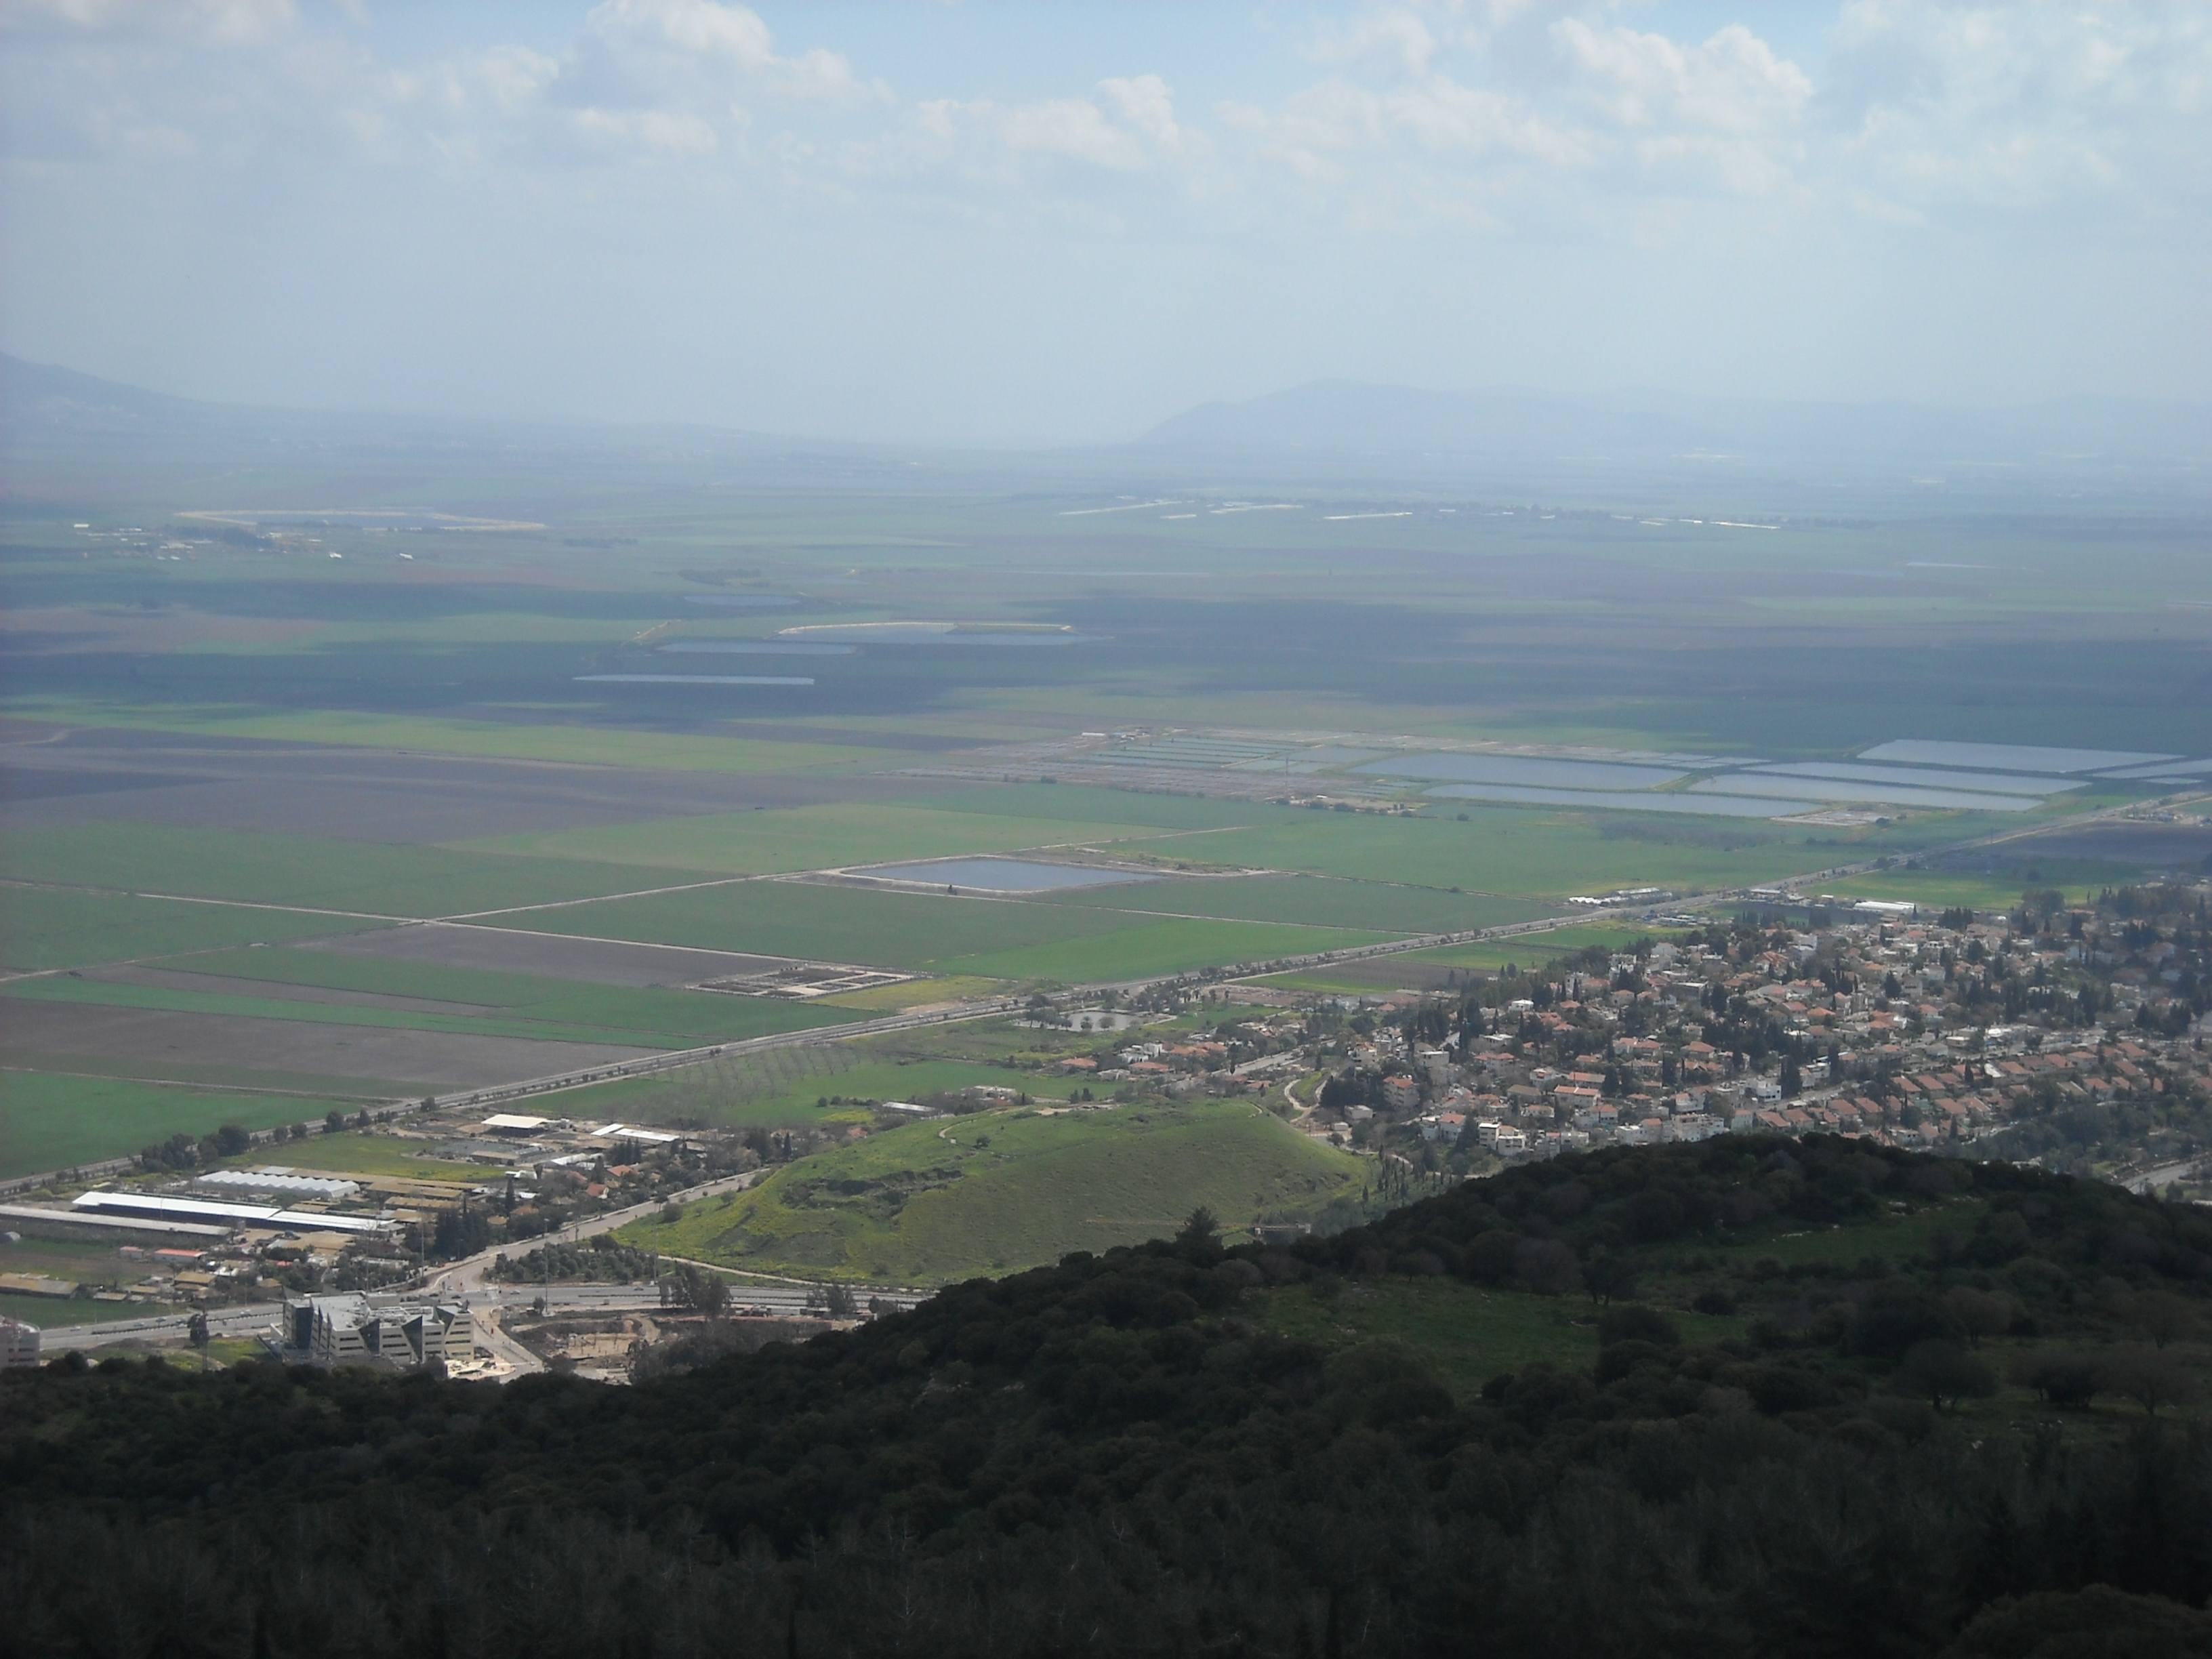 View from Mt. Carmel